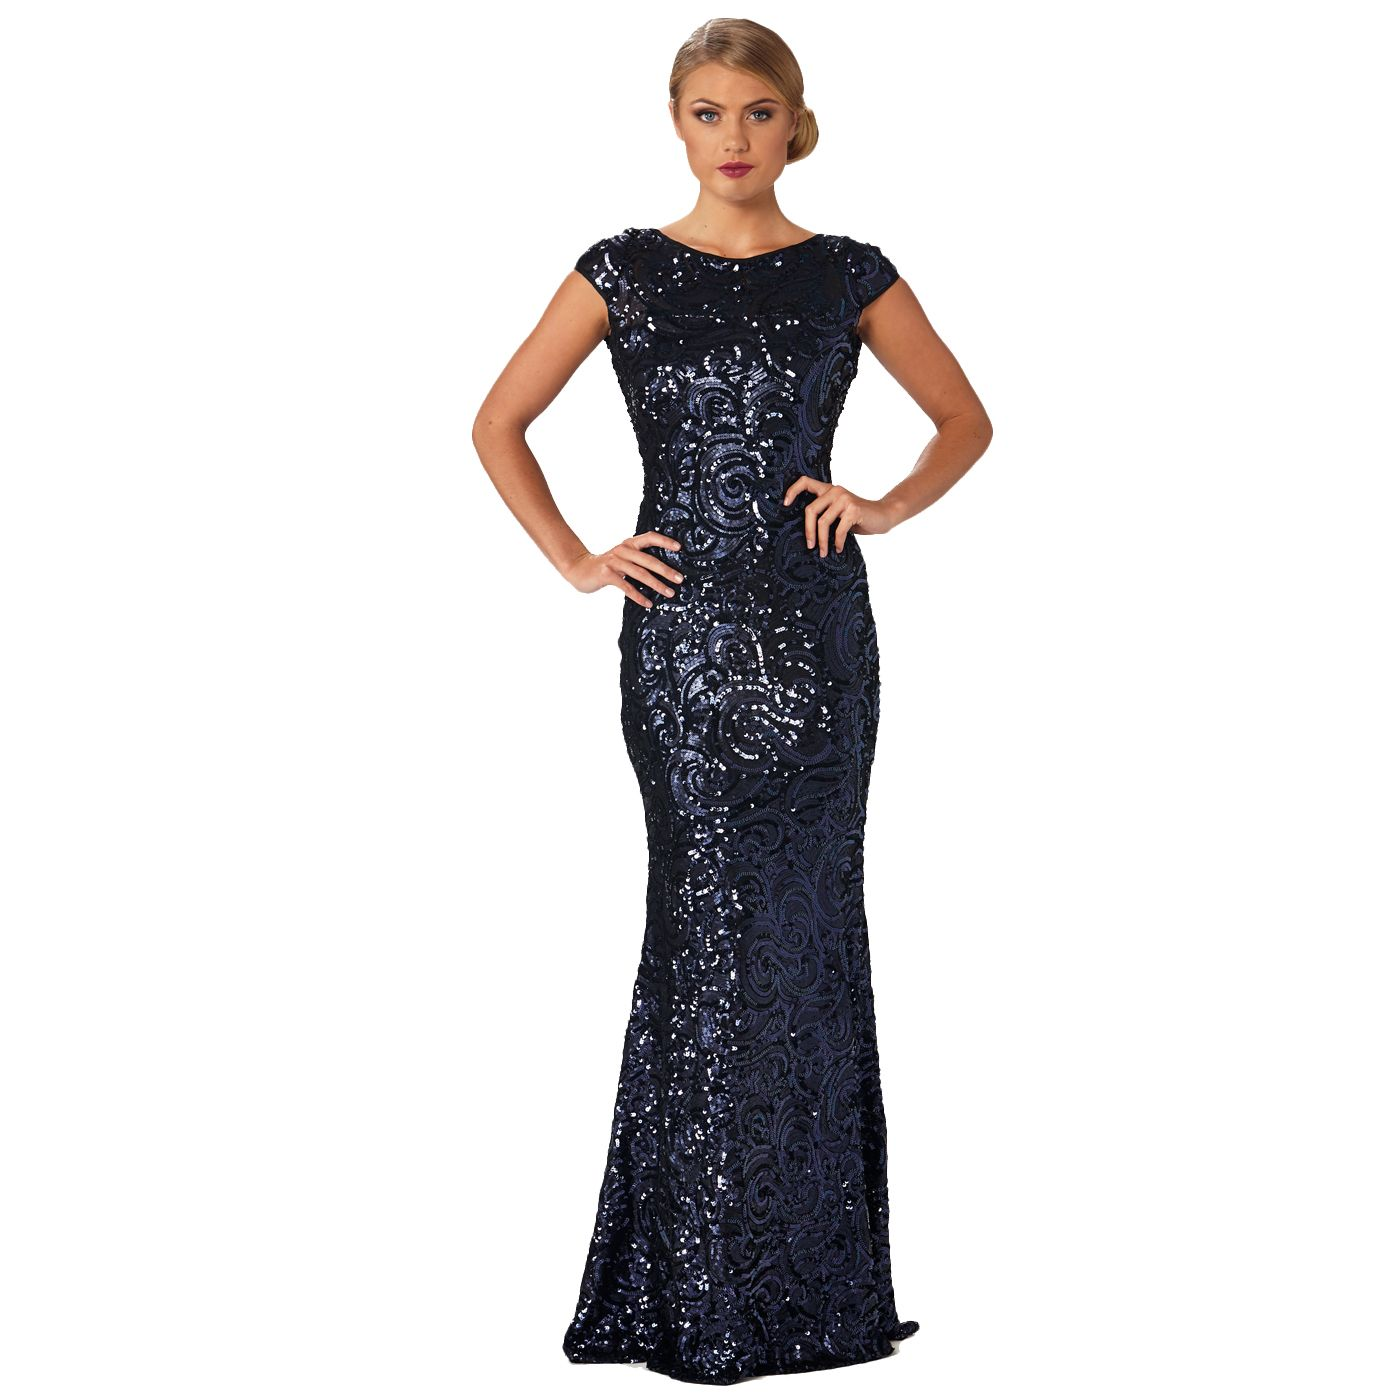 Evening gown details strapless evening dress silver sequin evening gown details strapless evening dress silver sequin detailing delicate sweet heart bust line the structured bust in four way stretch is ombrellifo Images